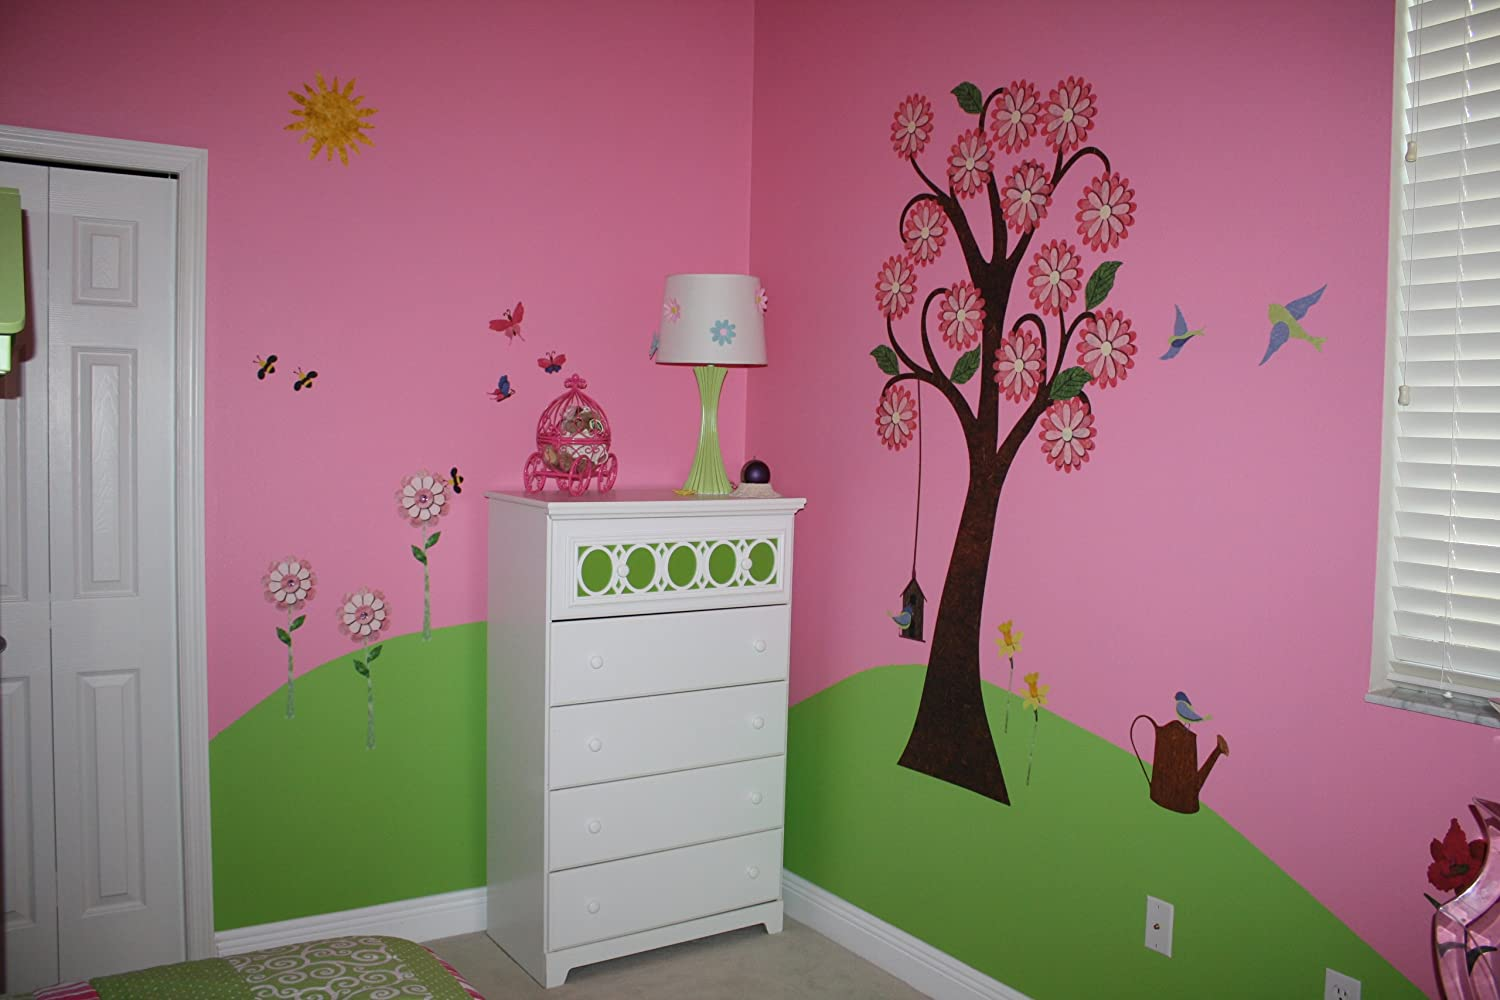 amazon com my wonderful walls repositionable and removable flower amazon com my wonderful walls repositionable and removable flower wall stickers for girls room multicolored home kitchen